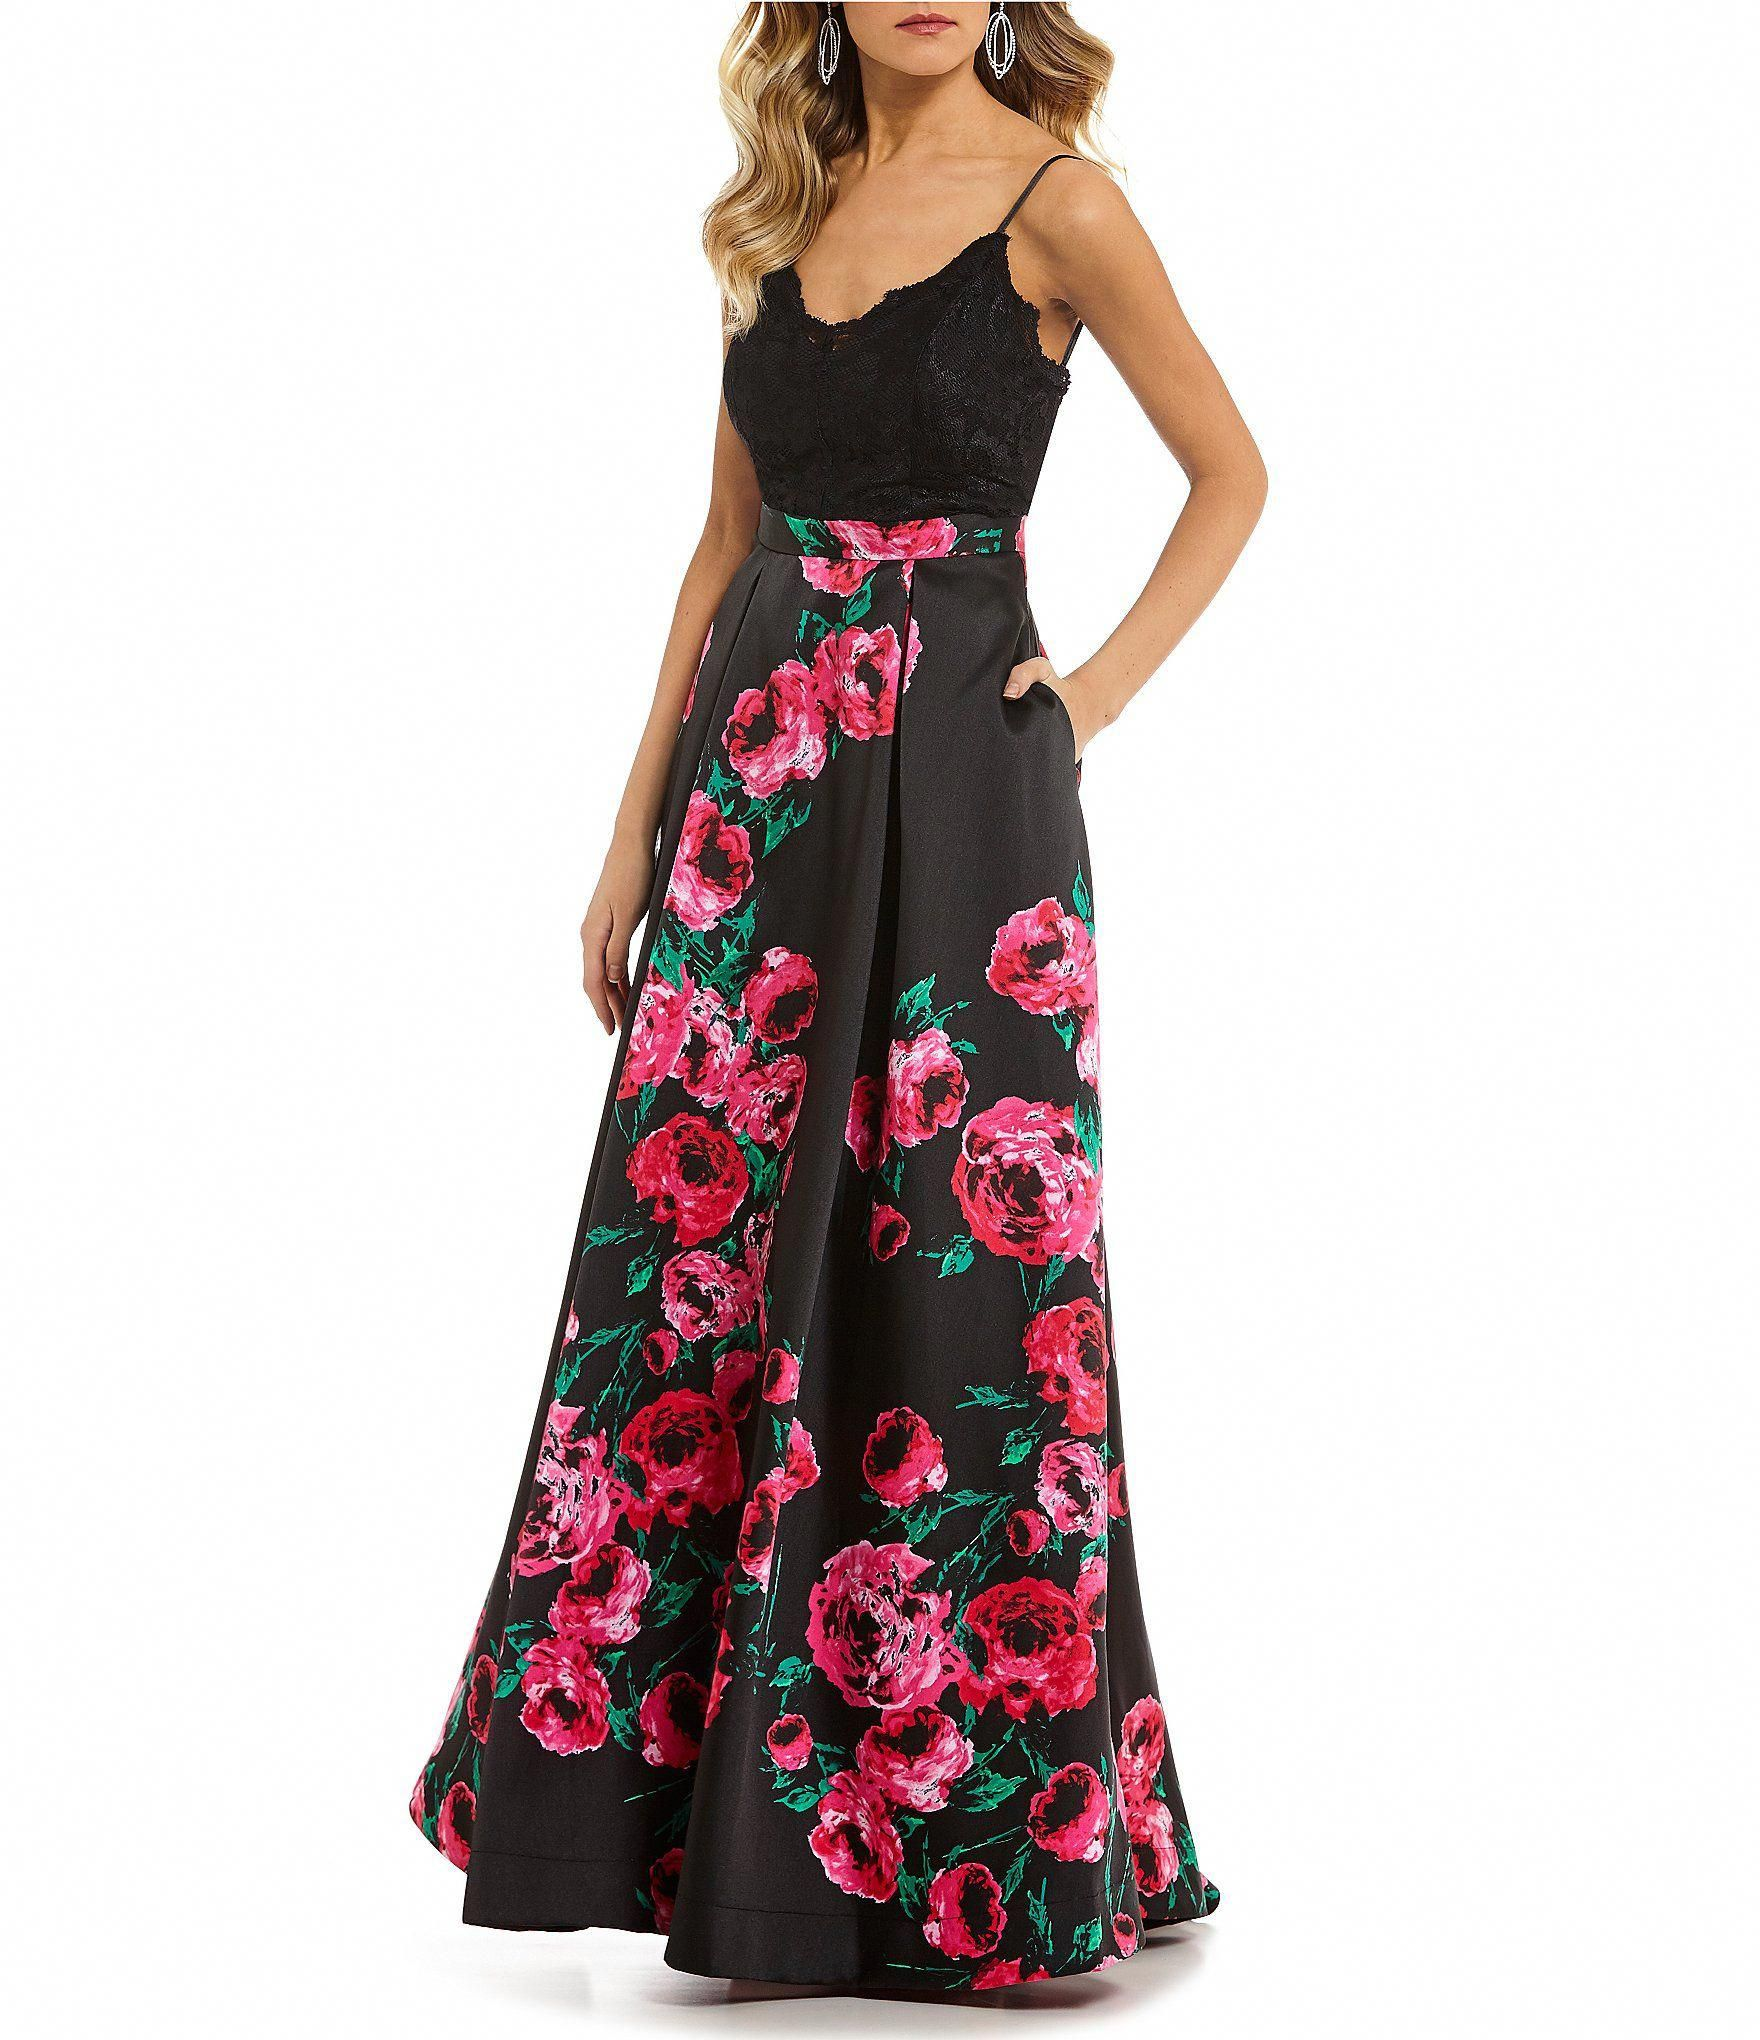 29d0c721c8 Shop for B. Darlin Lace Bodice Floral Ball Gown at Dillards.com. Visit  Dillards.com to find clothing